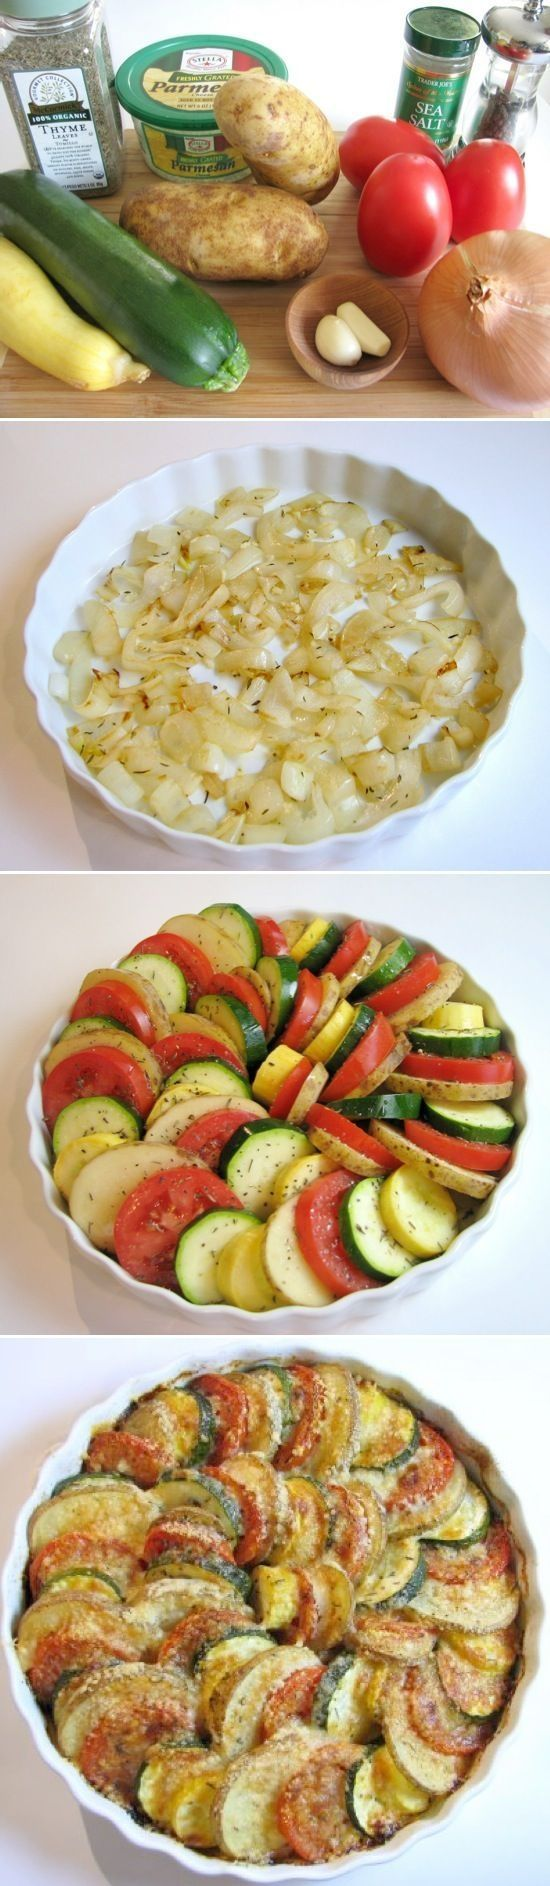 Parmesan Vegetable Spiral: a bed of onions is topped by a medley of veggies (tomatoes, potatoes, squash & zucchini) then drizzled w EVOO, sprinkled w Parmesan cheese & roasted! Mmmmm by Ken61